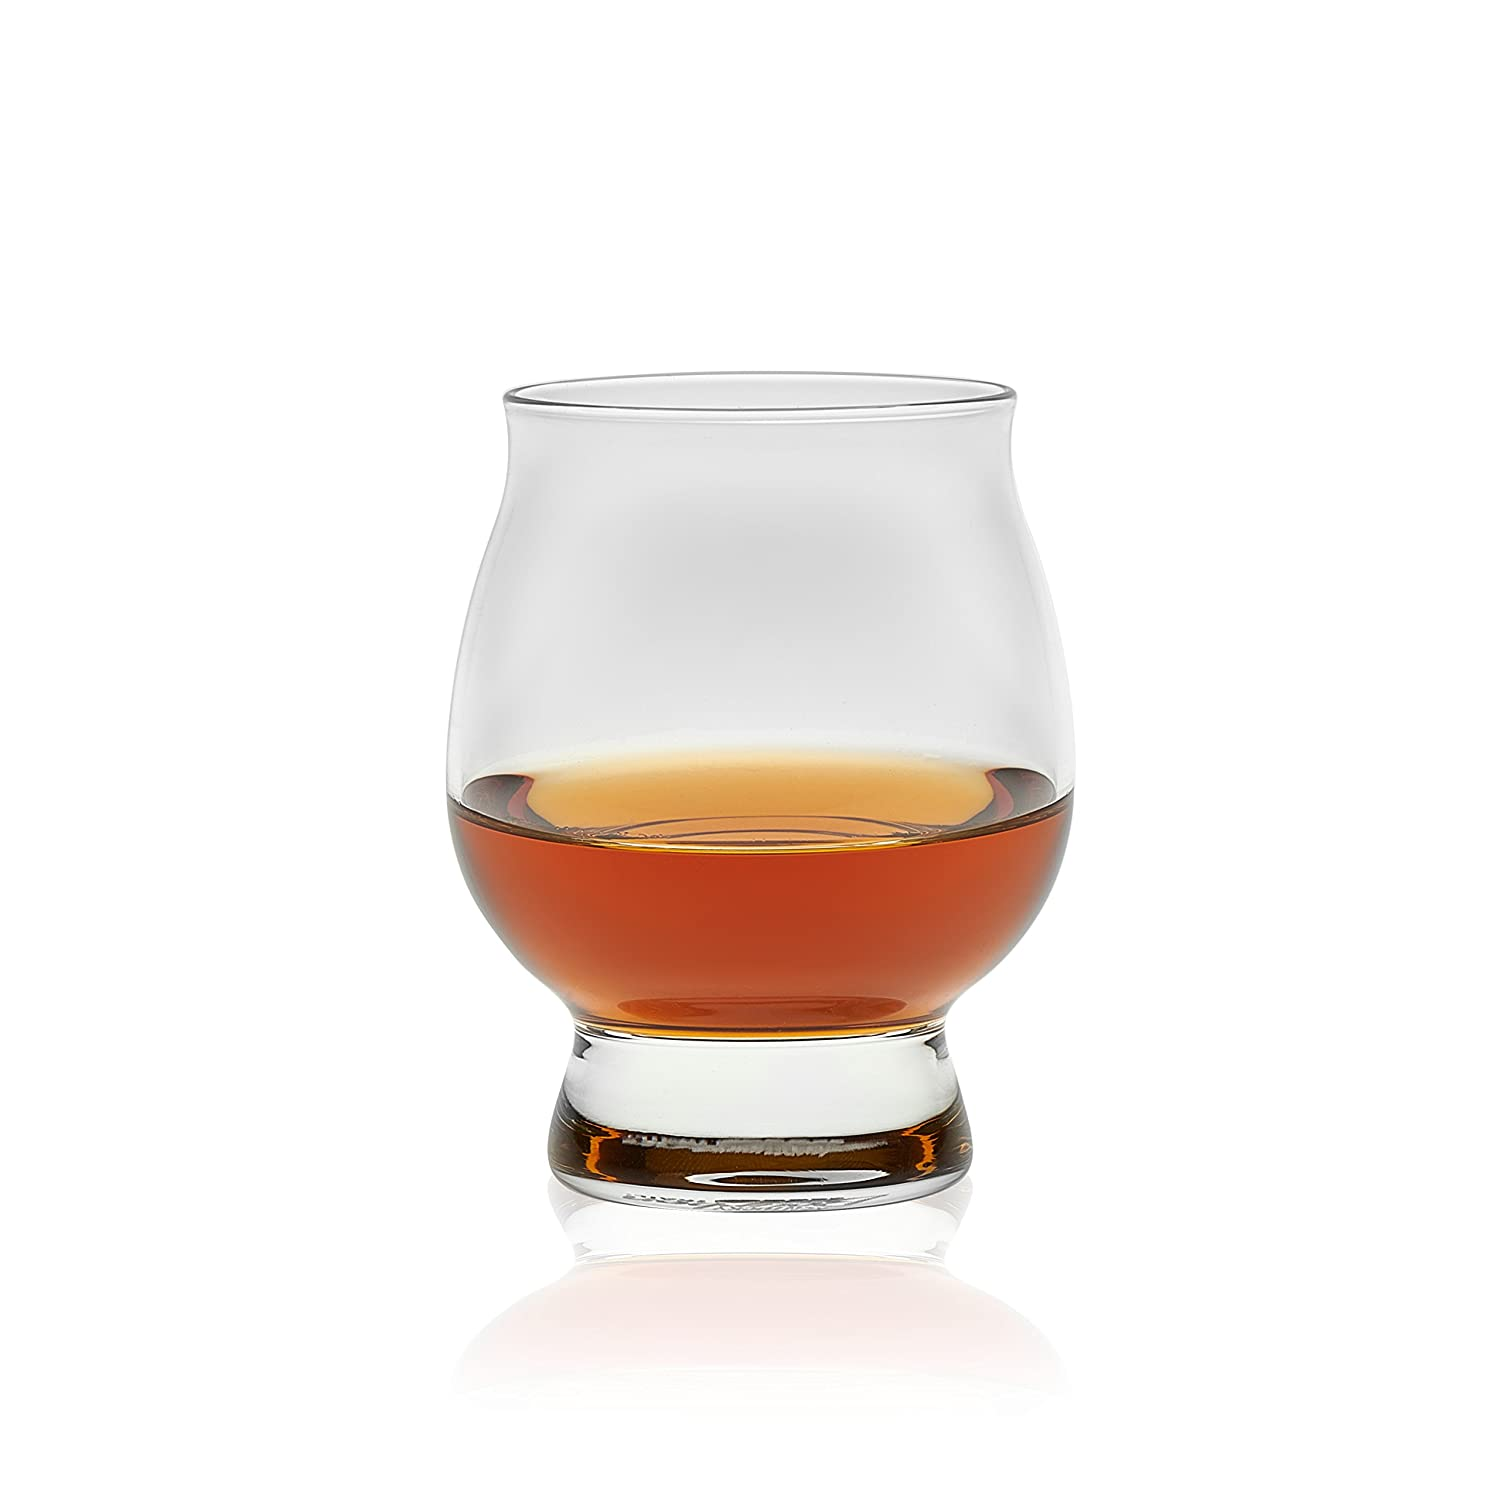 Libbey Signature Kentucky Bourbon Trail 4-piece Whiskey Glass Set 9196/L001A